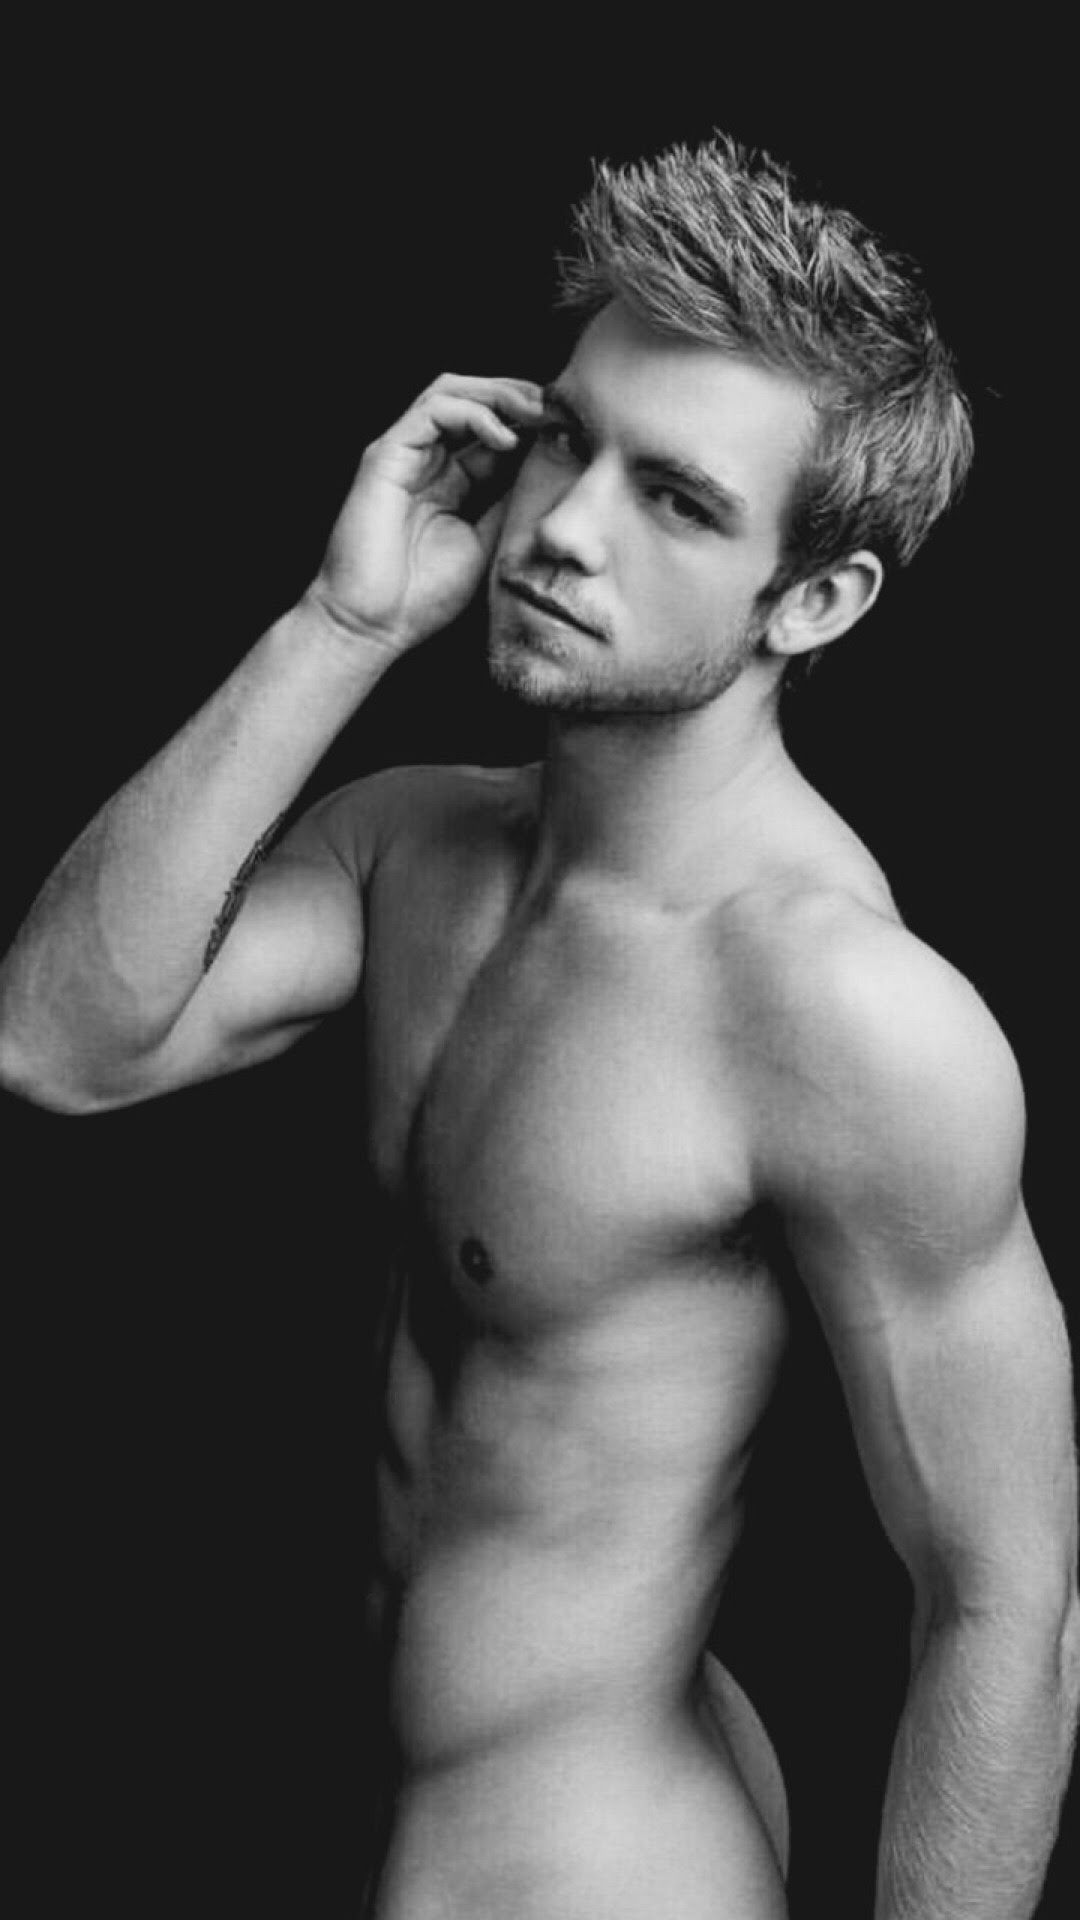 Dustin McNeer and a peek of his backsideClick here for other Dustin McNeer posts.